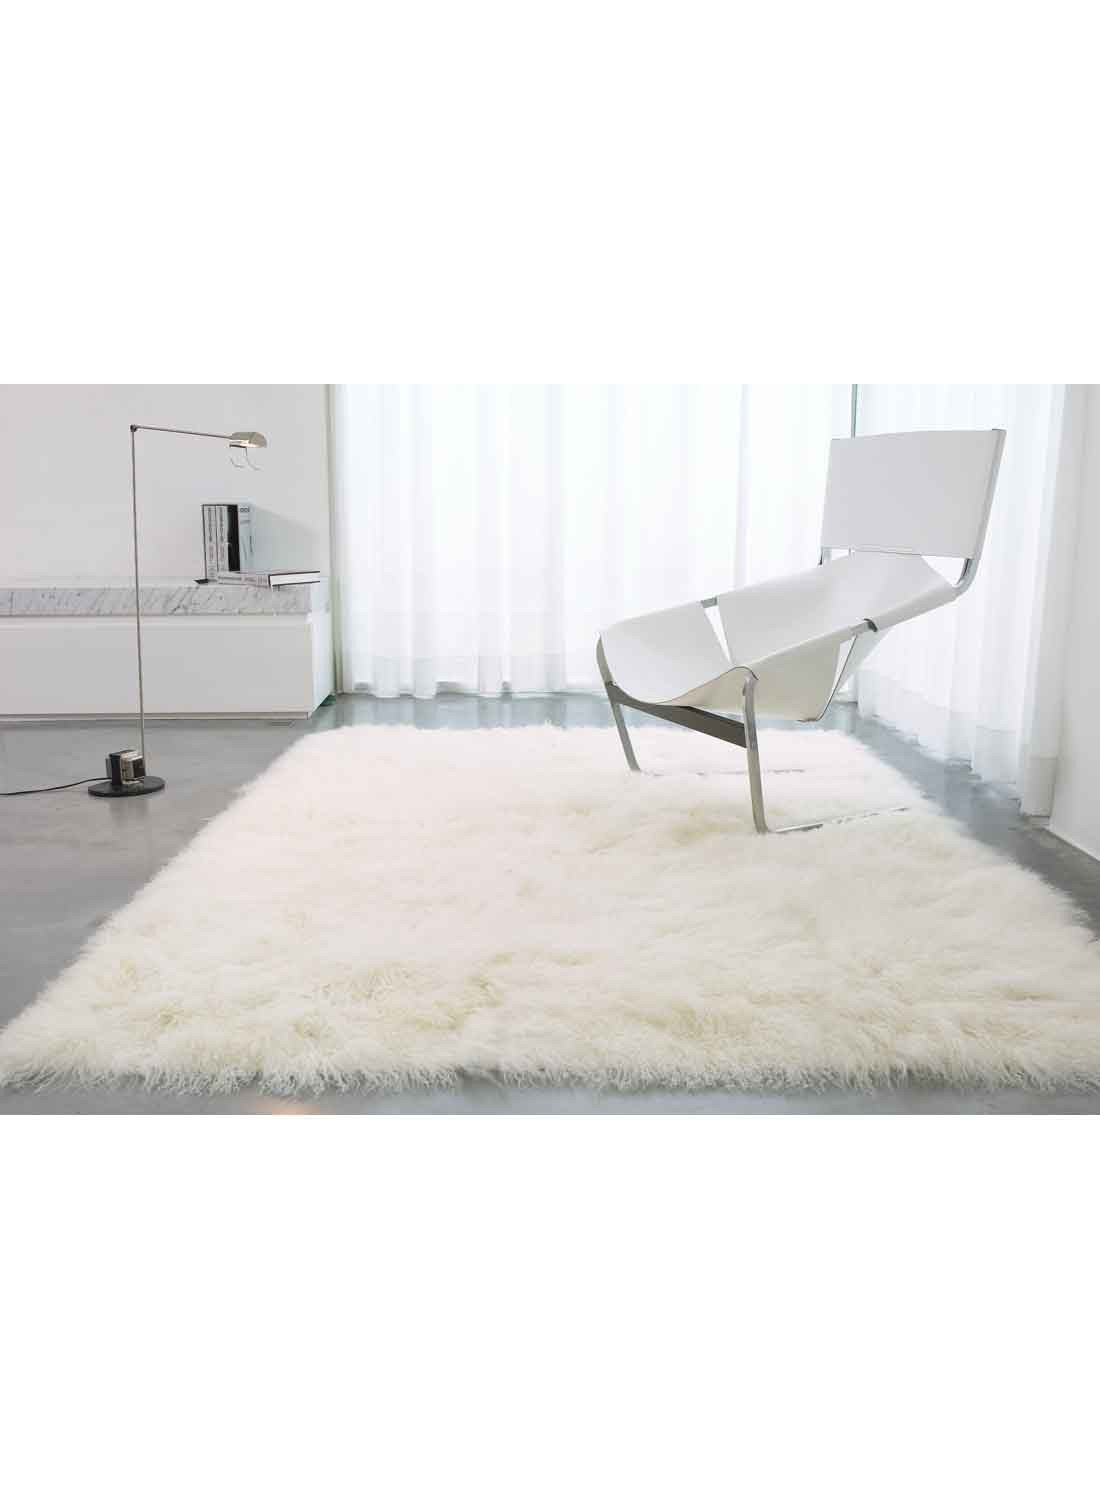 Tapis Poil Long Blanc Idees De Decoration Interieure French Decor